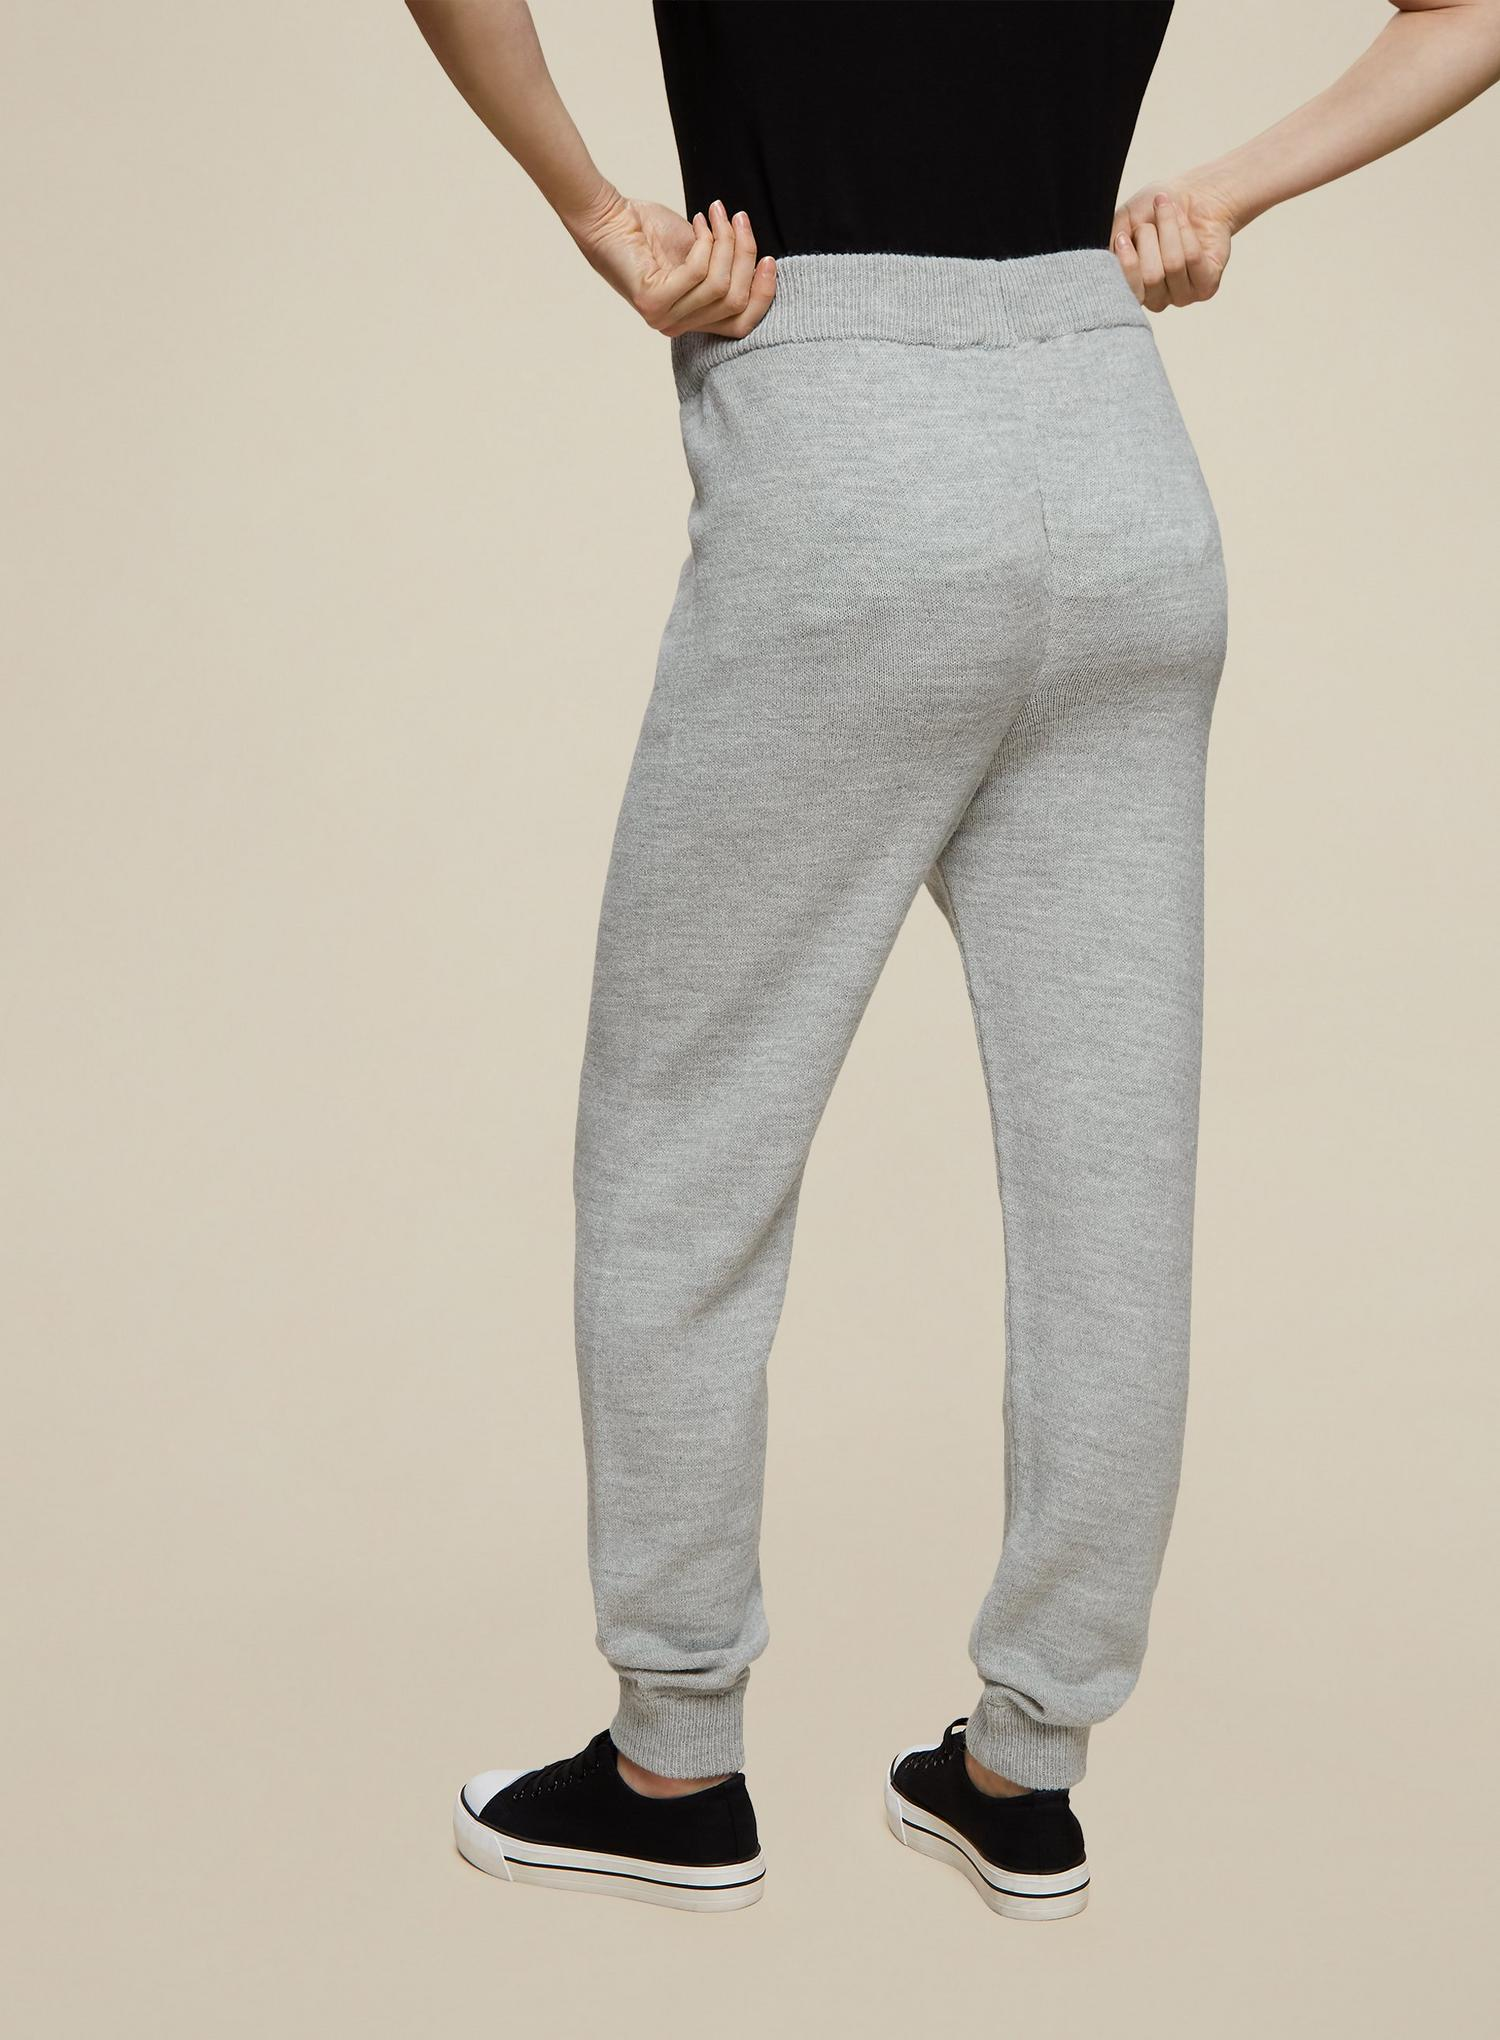 131 Maternity Grey Joggers image number 4